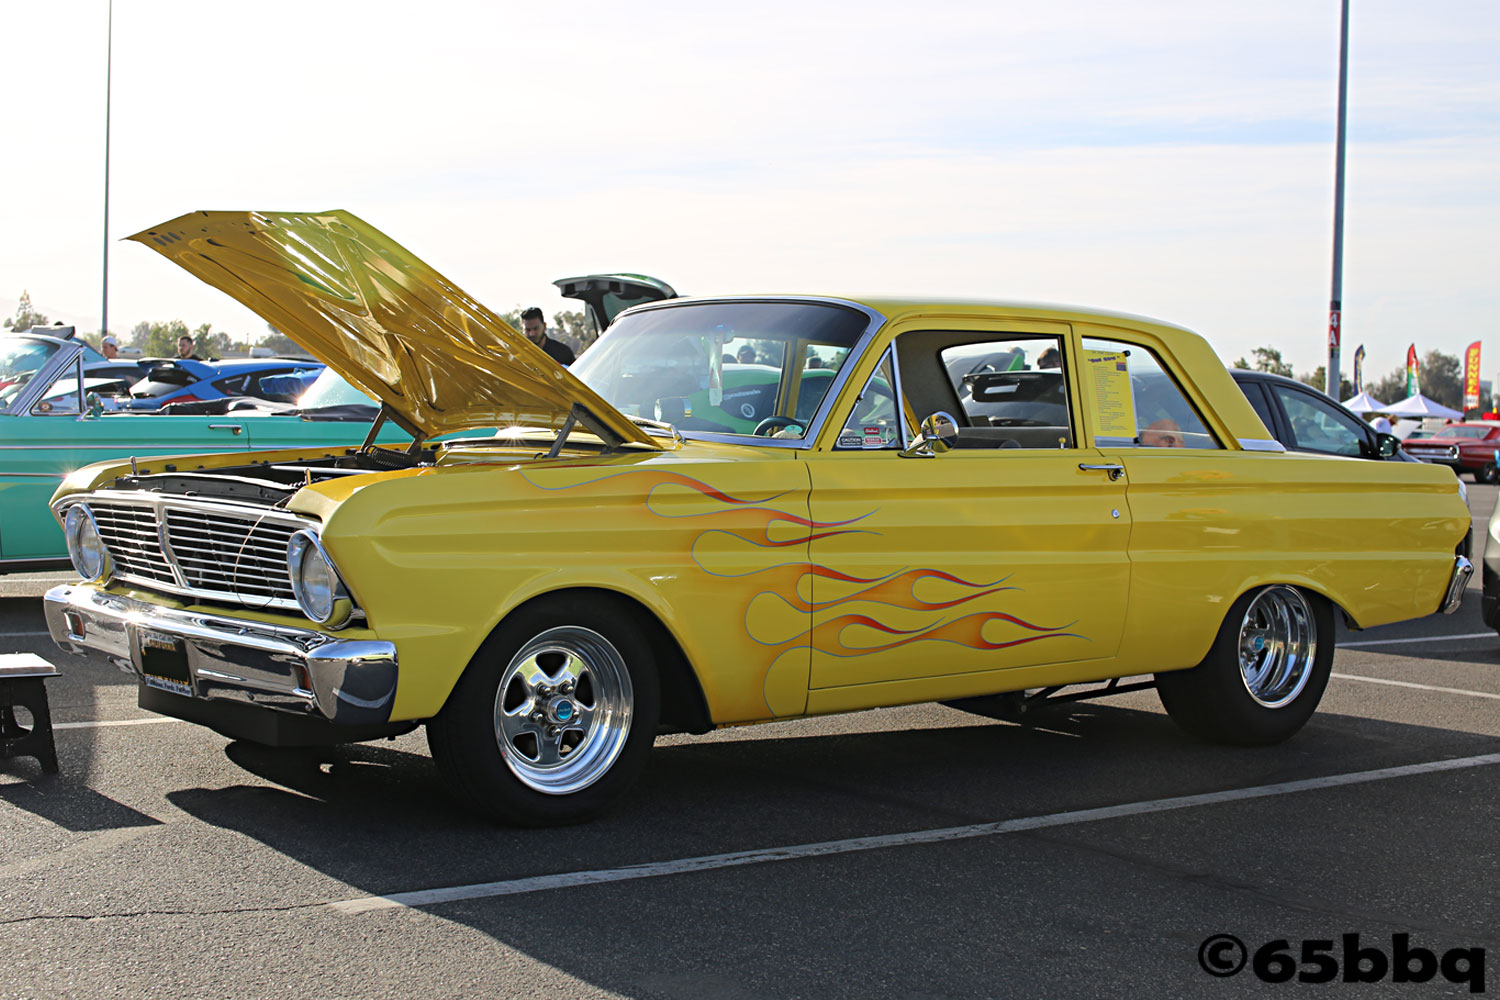 fabulous-fords-forever-april-2019-65bbq-f20.jpg